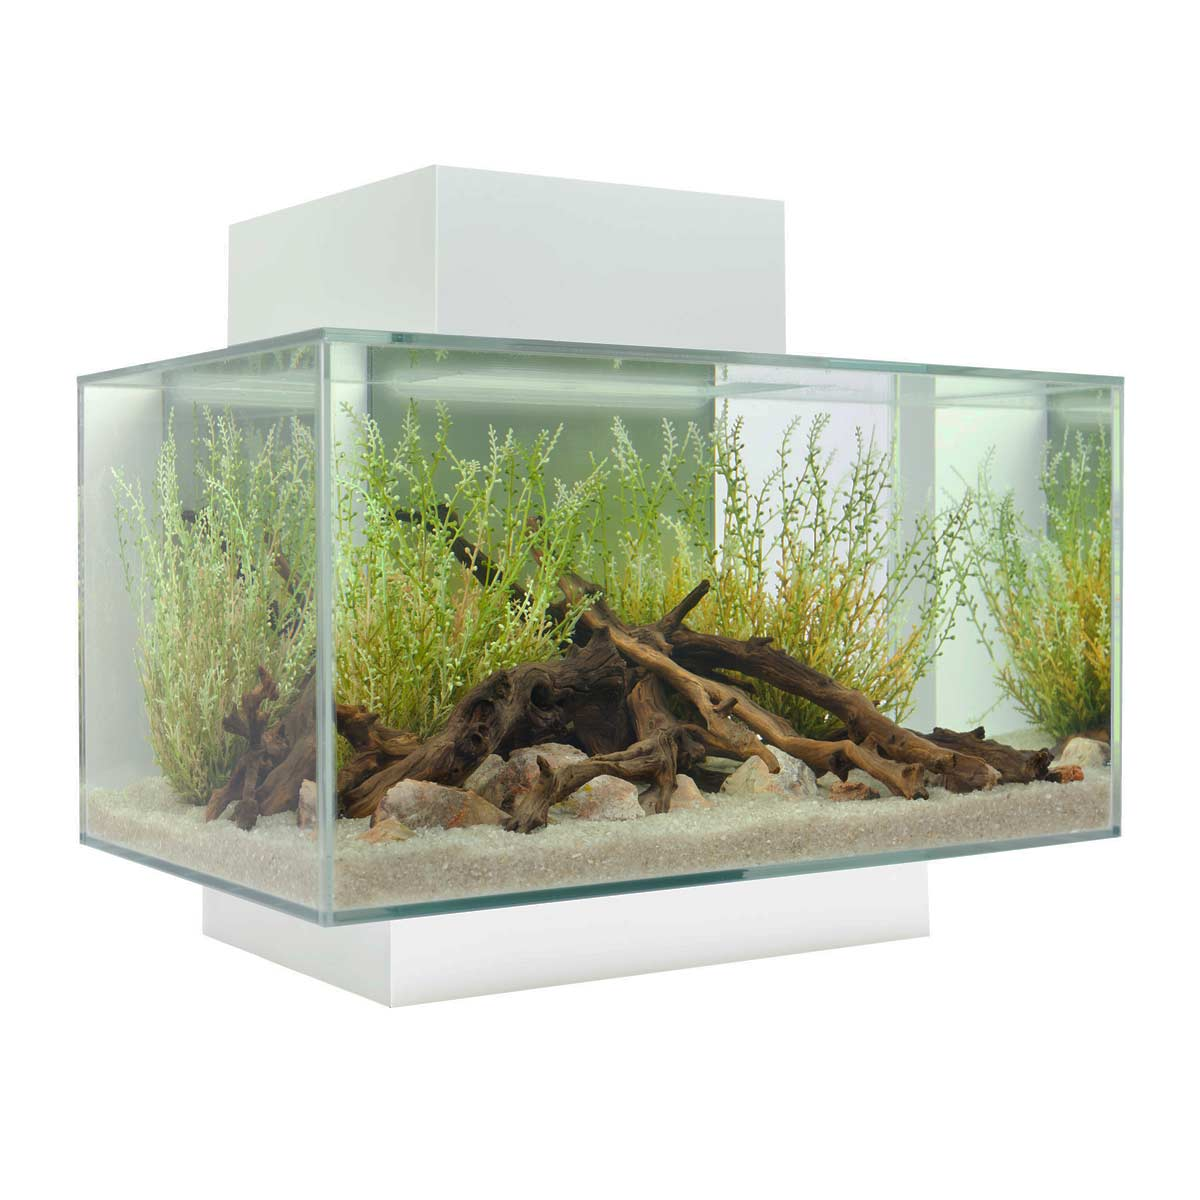 Fluval edge fish tank 23 litre white for Fluval fish tank